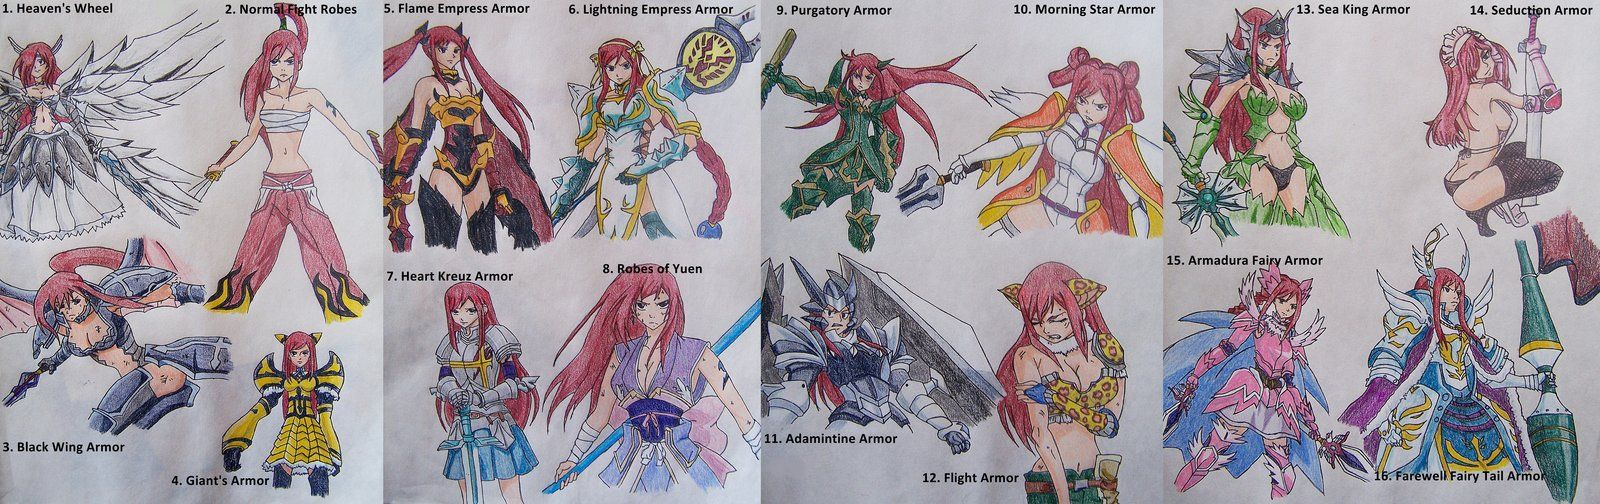 Erza Scarlet Armor List | Erza Scarlet Armor List by Libra-Creates